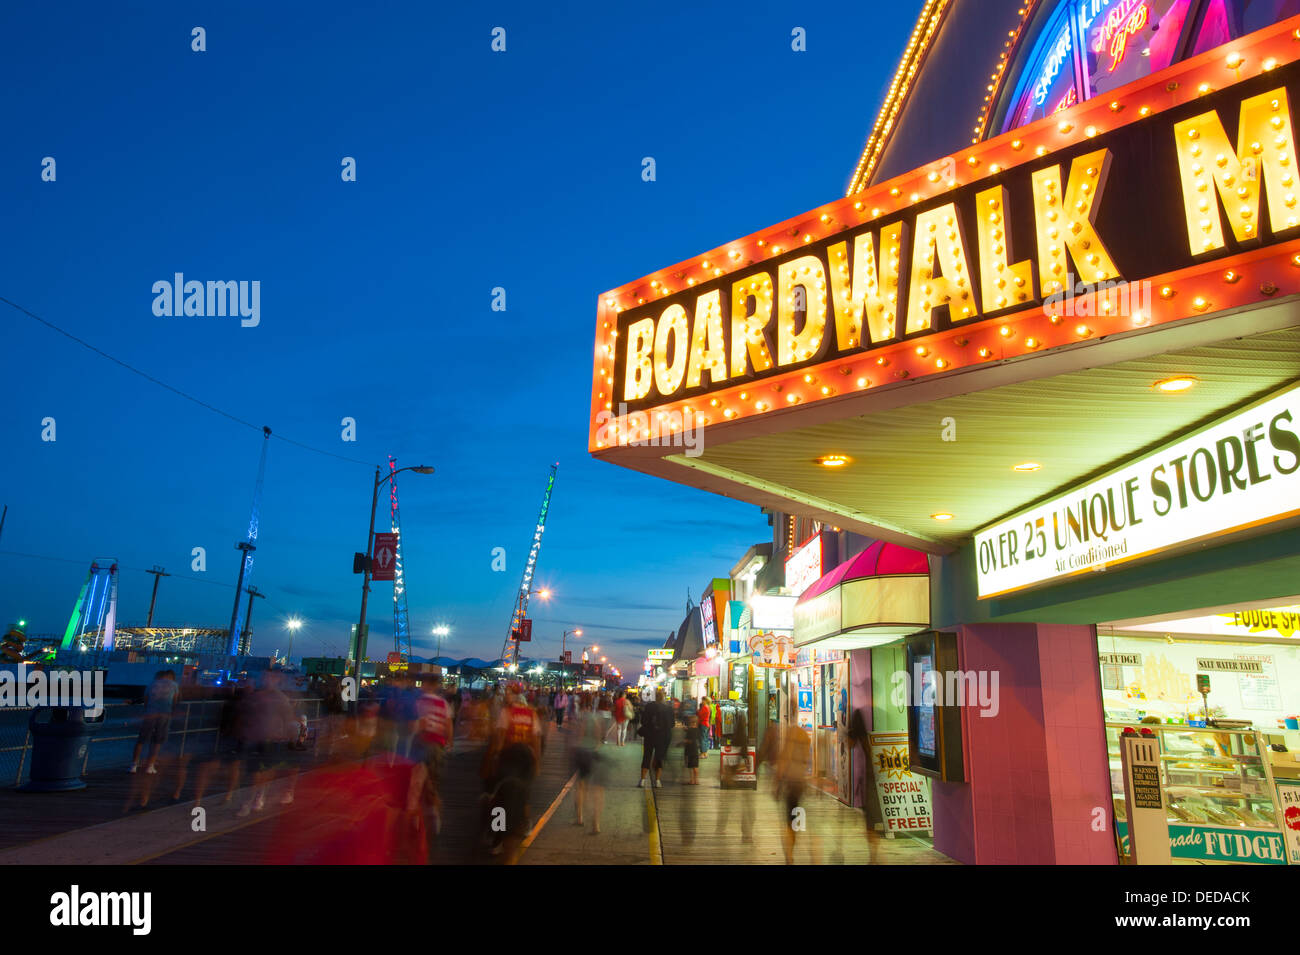 usa-new-jersey-nj-shore-wildwood-boardwalk-at-night-food-games-rides-DEDACK.jpg